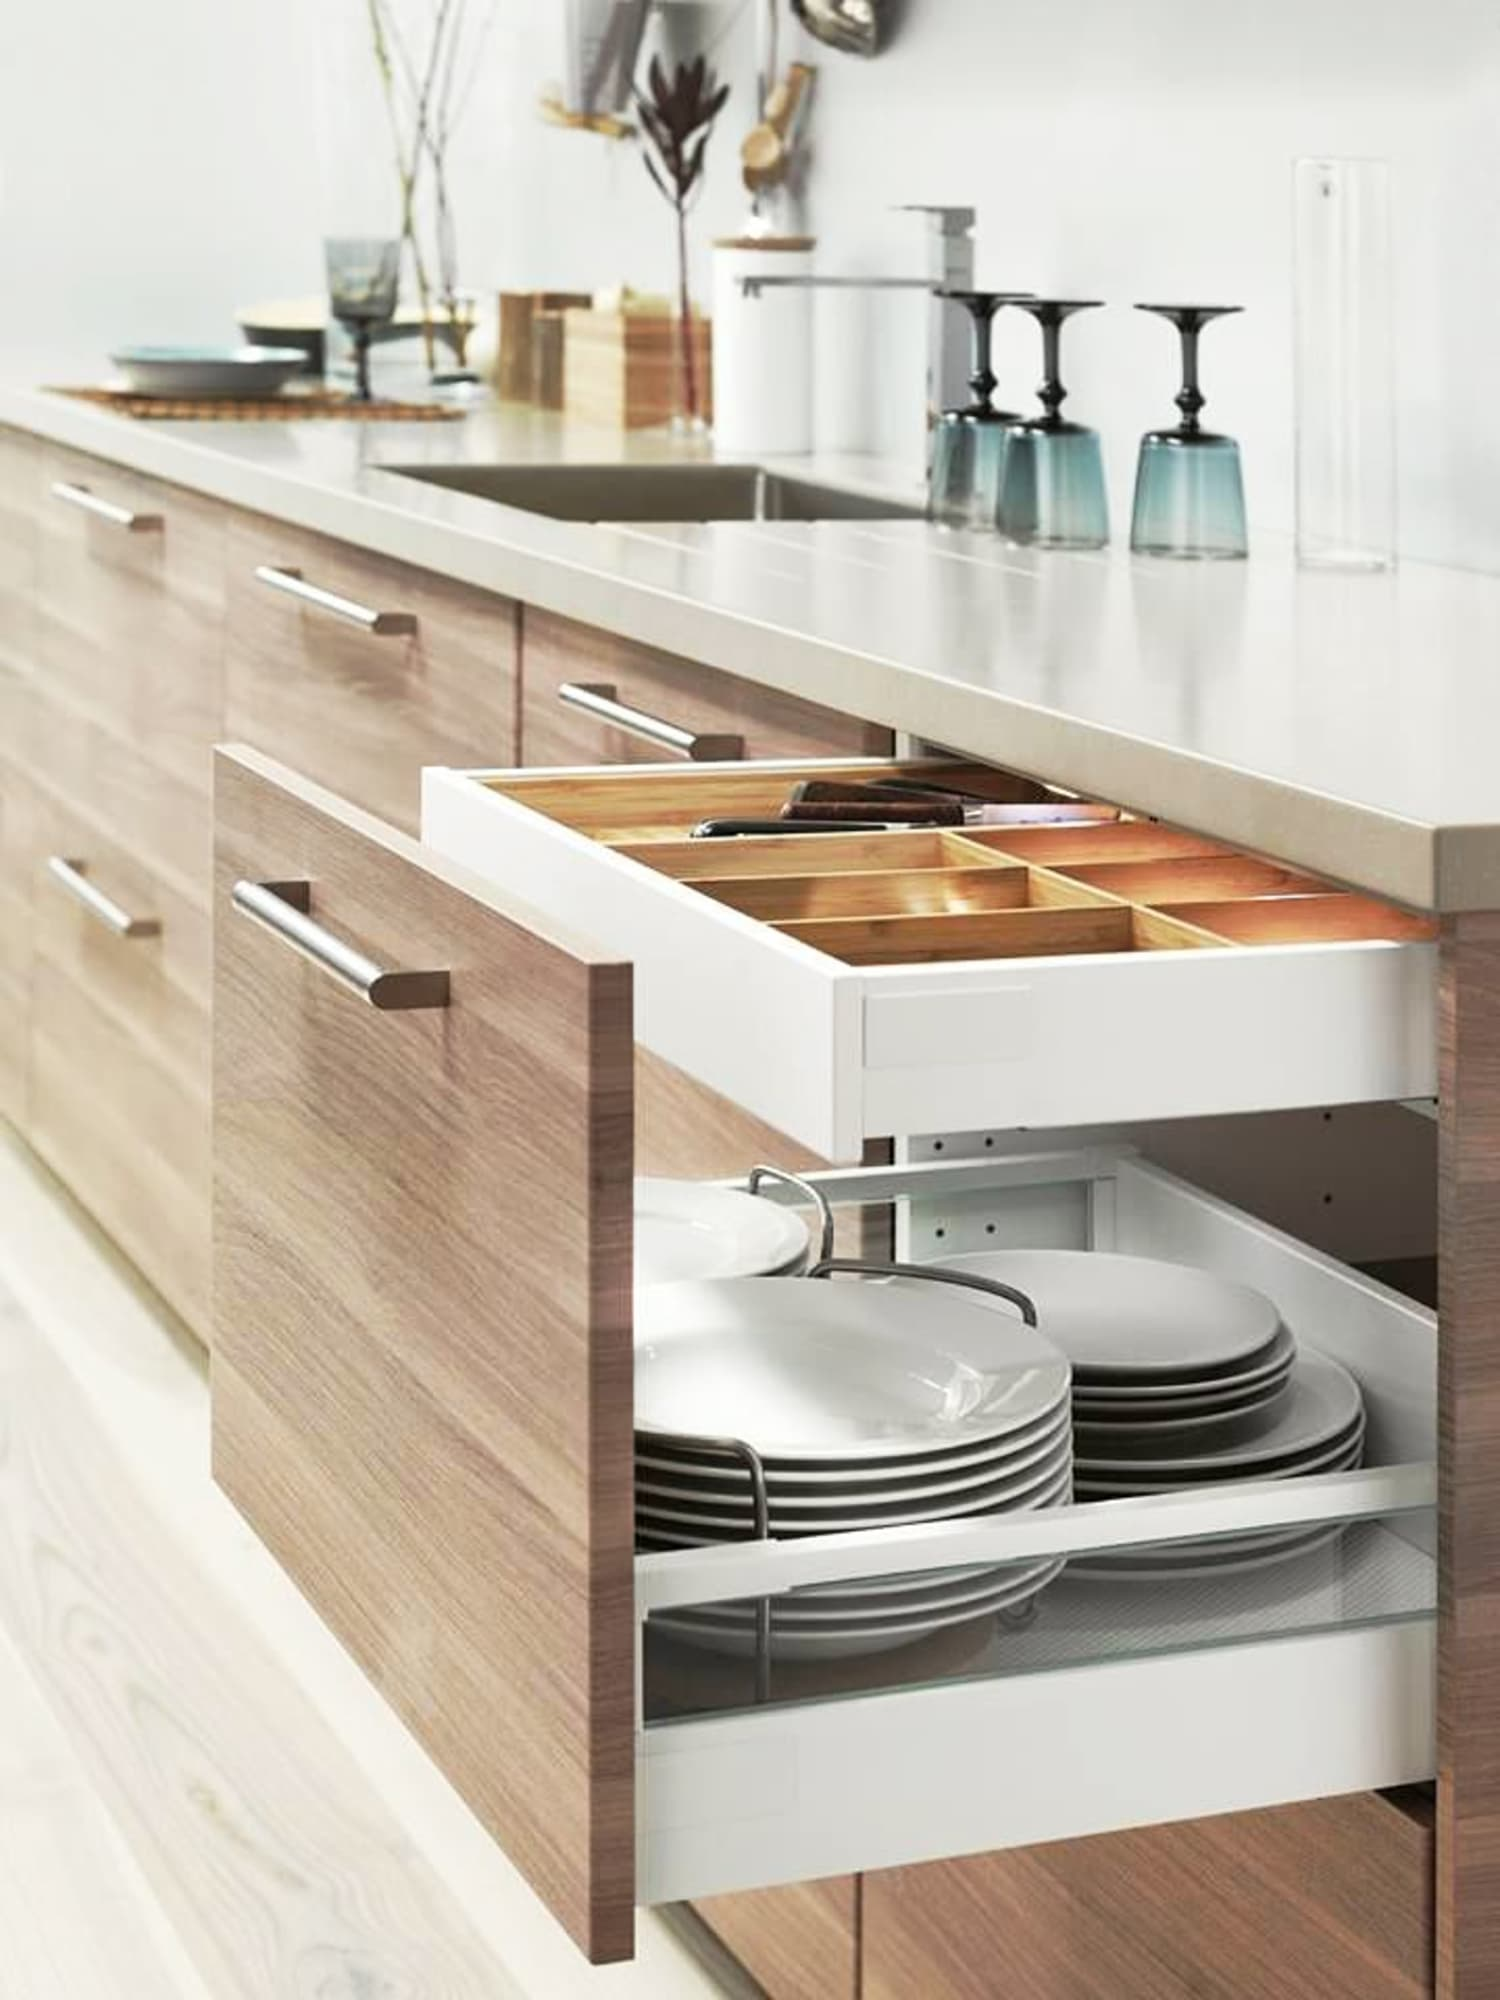 IKEA Is Totally Changing Their Kitchen Cabinet System. Hereu0027s What We Know  About SEKTION. | Kitchn